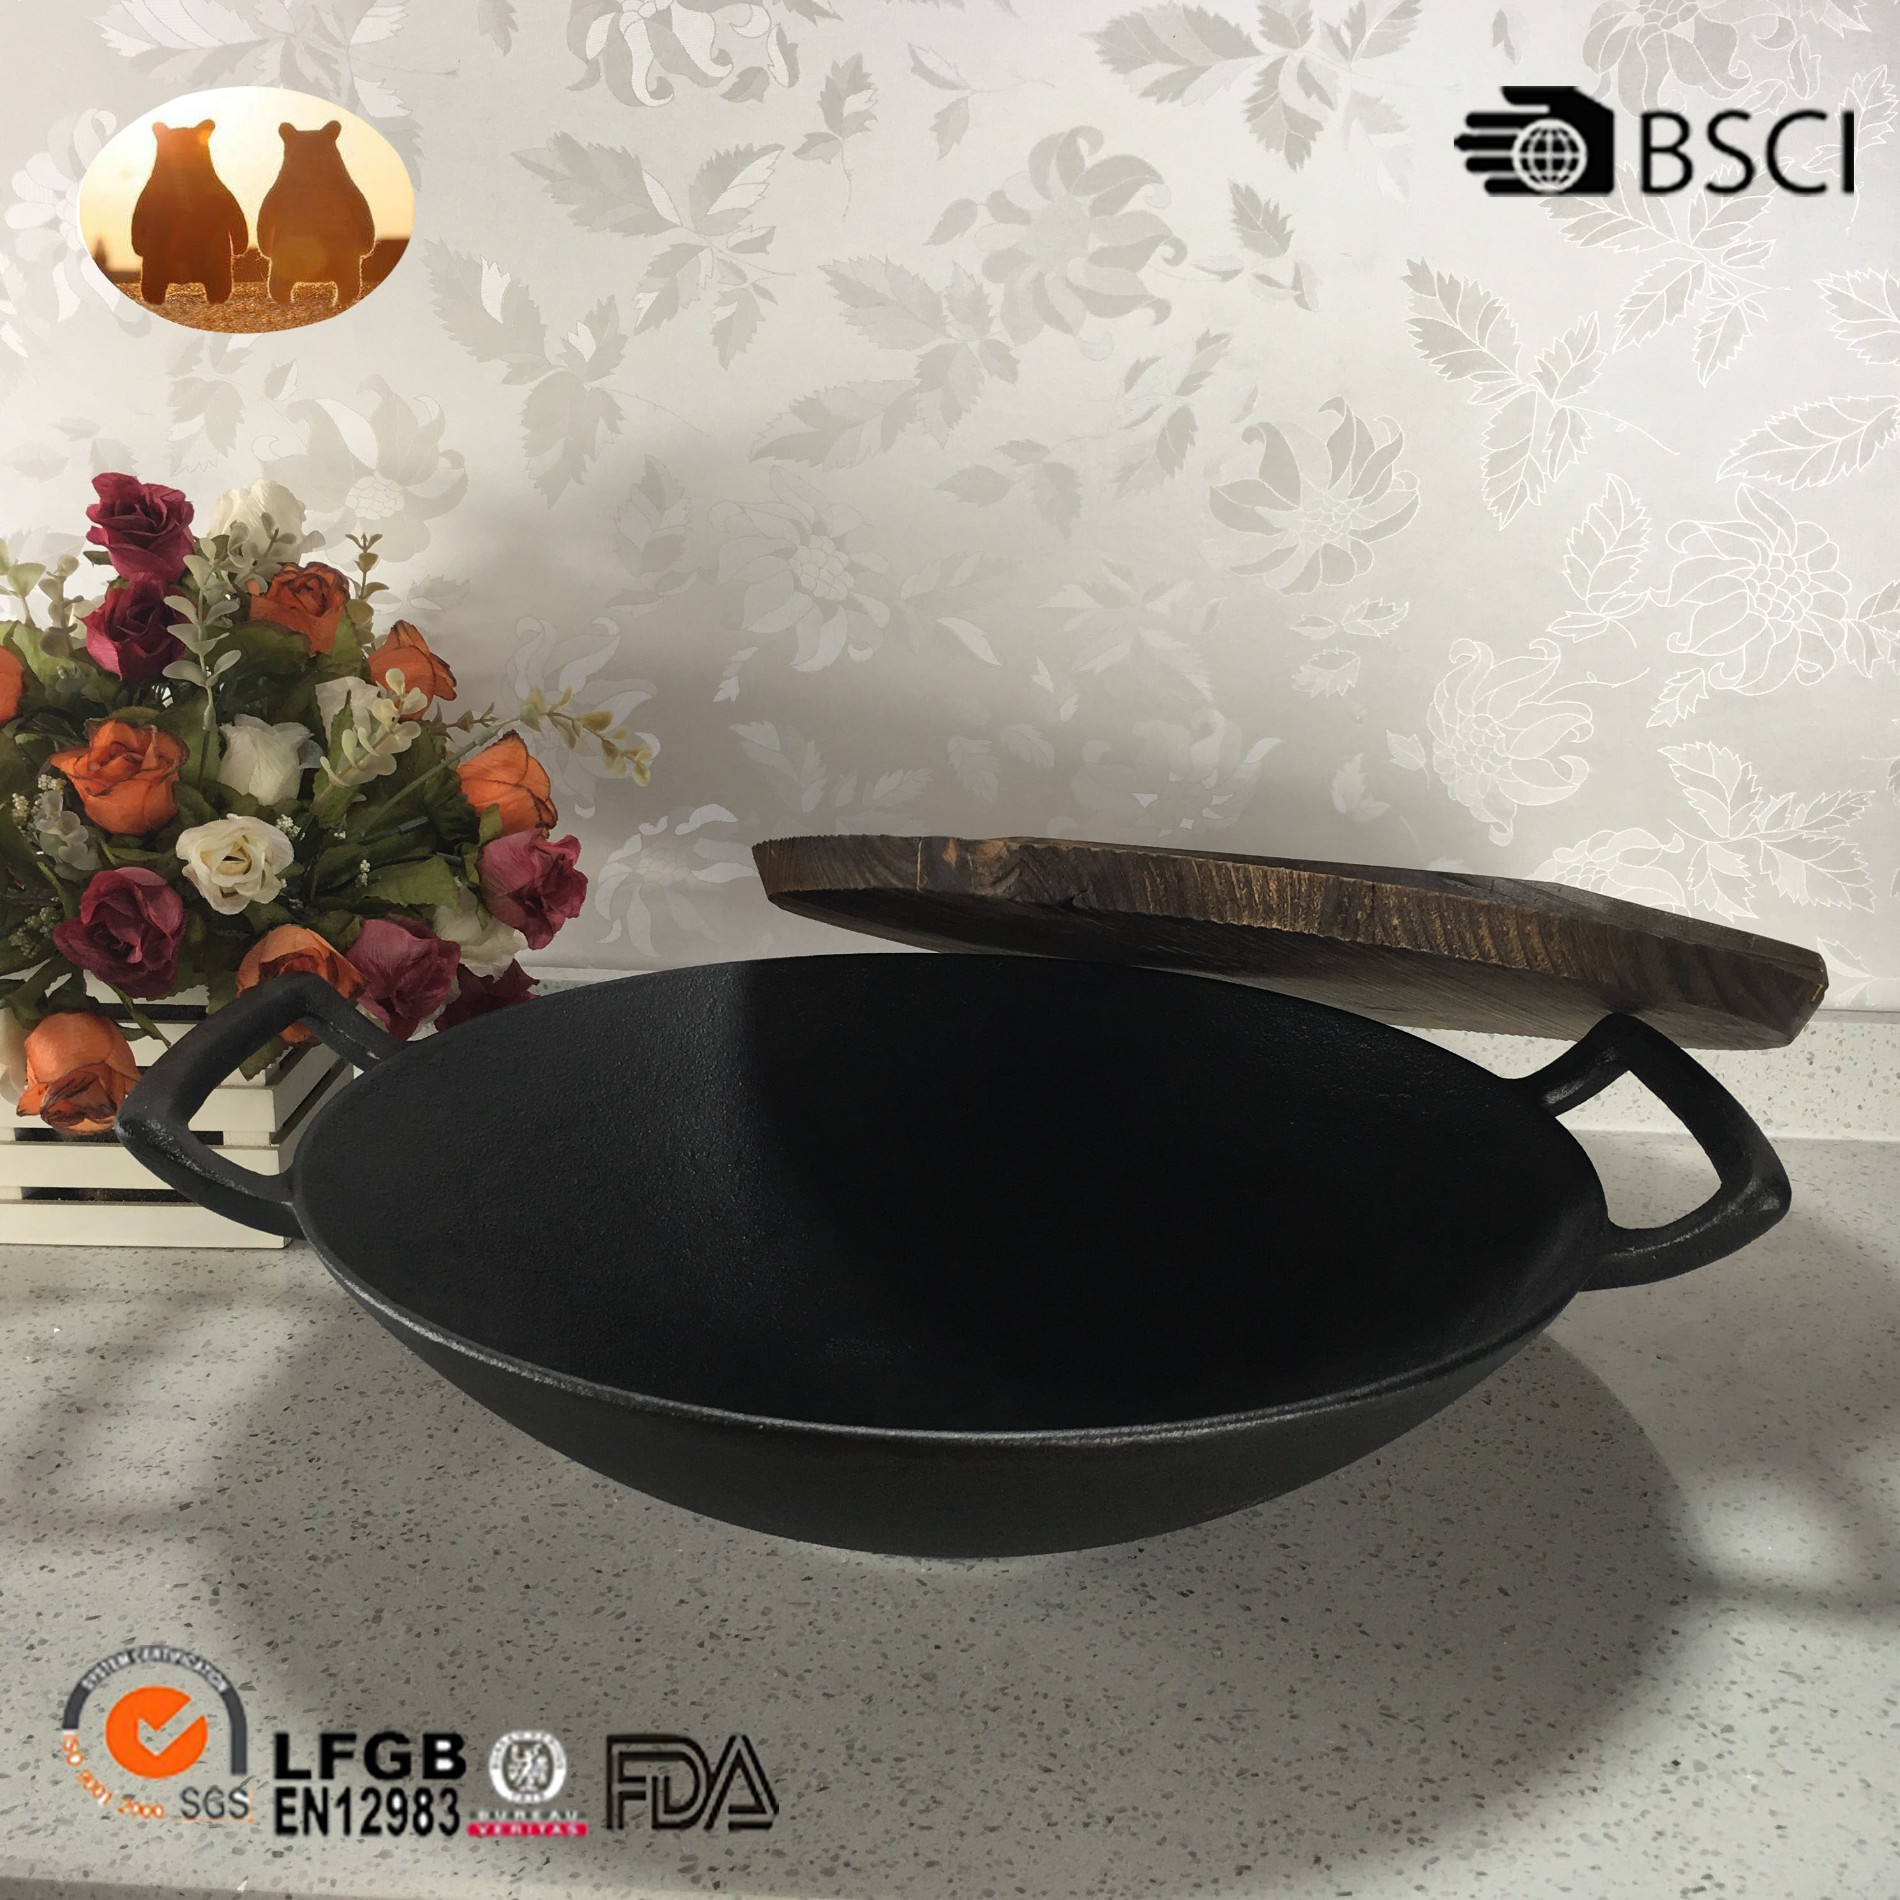 Cast Iron Wok With Two Handle Manufacturers, Cast Iron Wok With Two Handle Factory, Supply Cast Iron Wok With Two Handle